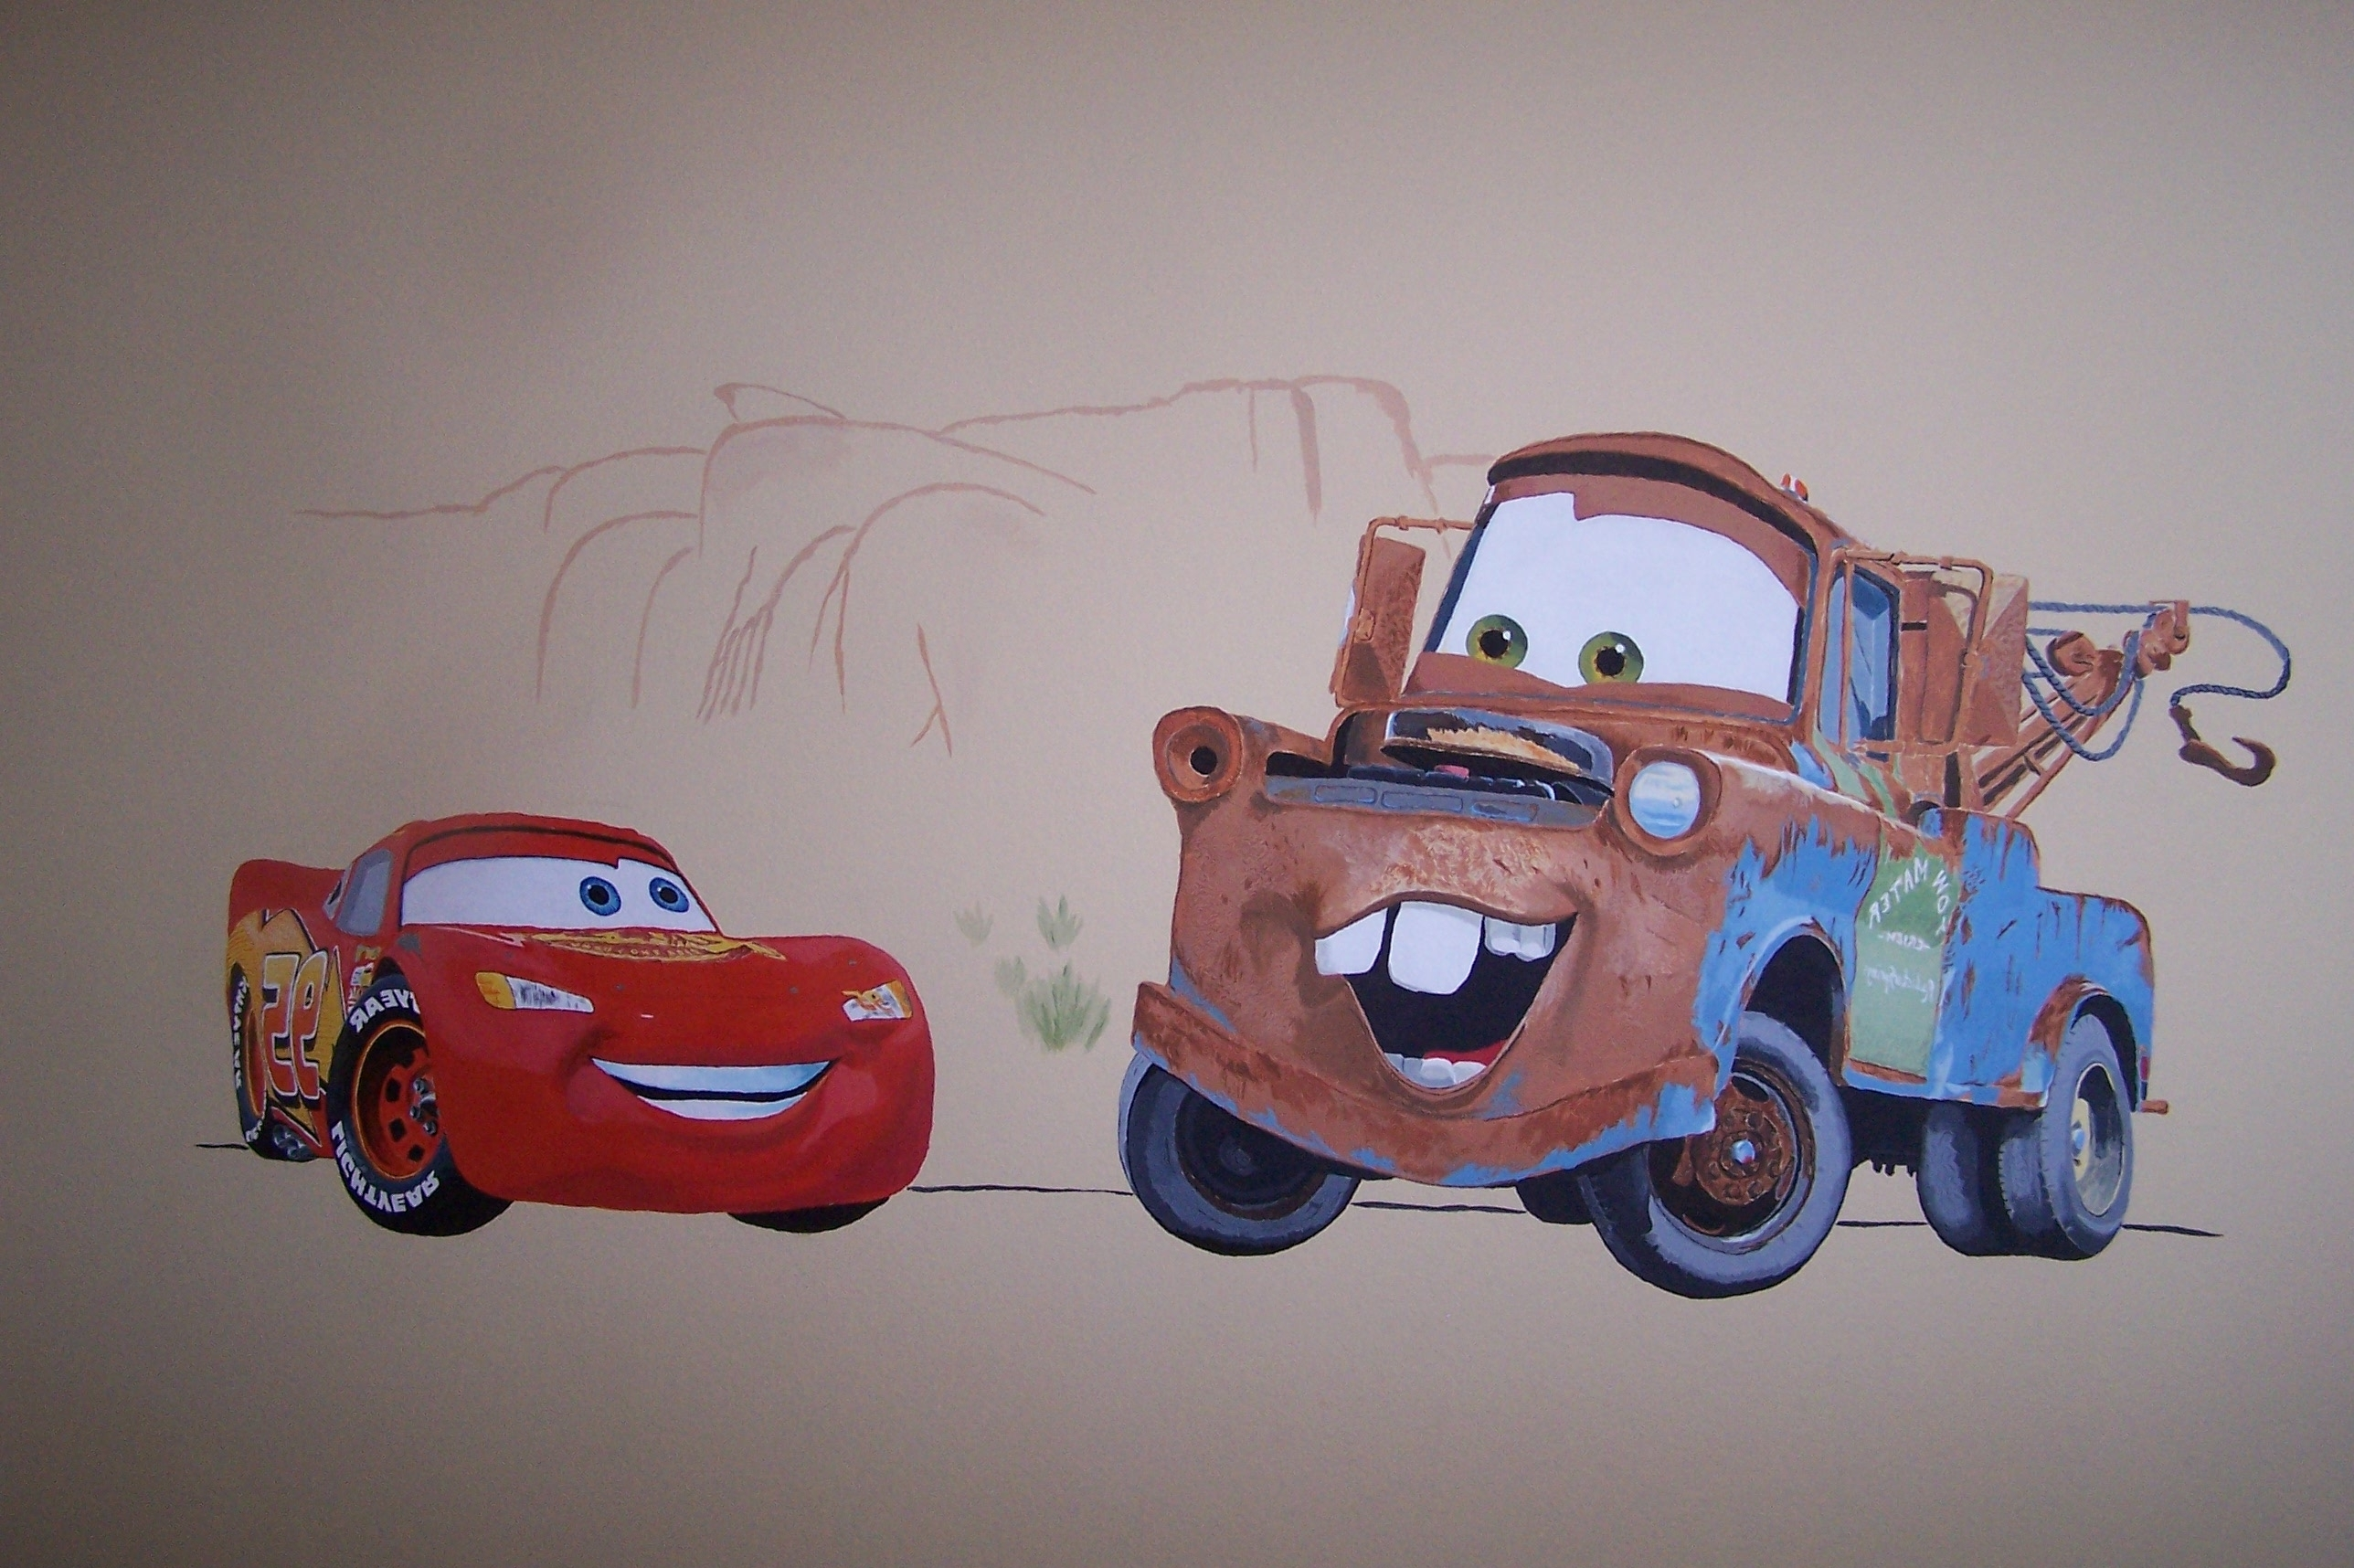 Cars Wall Mural – Drawn And Paintederic – With Lightning Pertaining To Most Recently Released Lightning Mcqueen Wall Art (View 10 of 15)